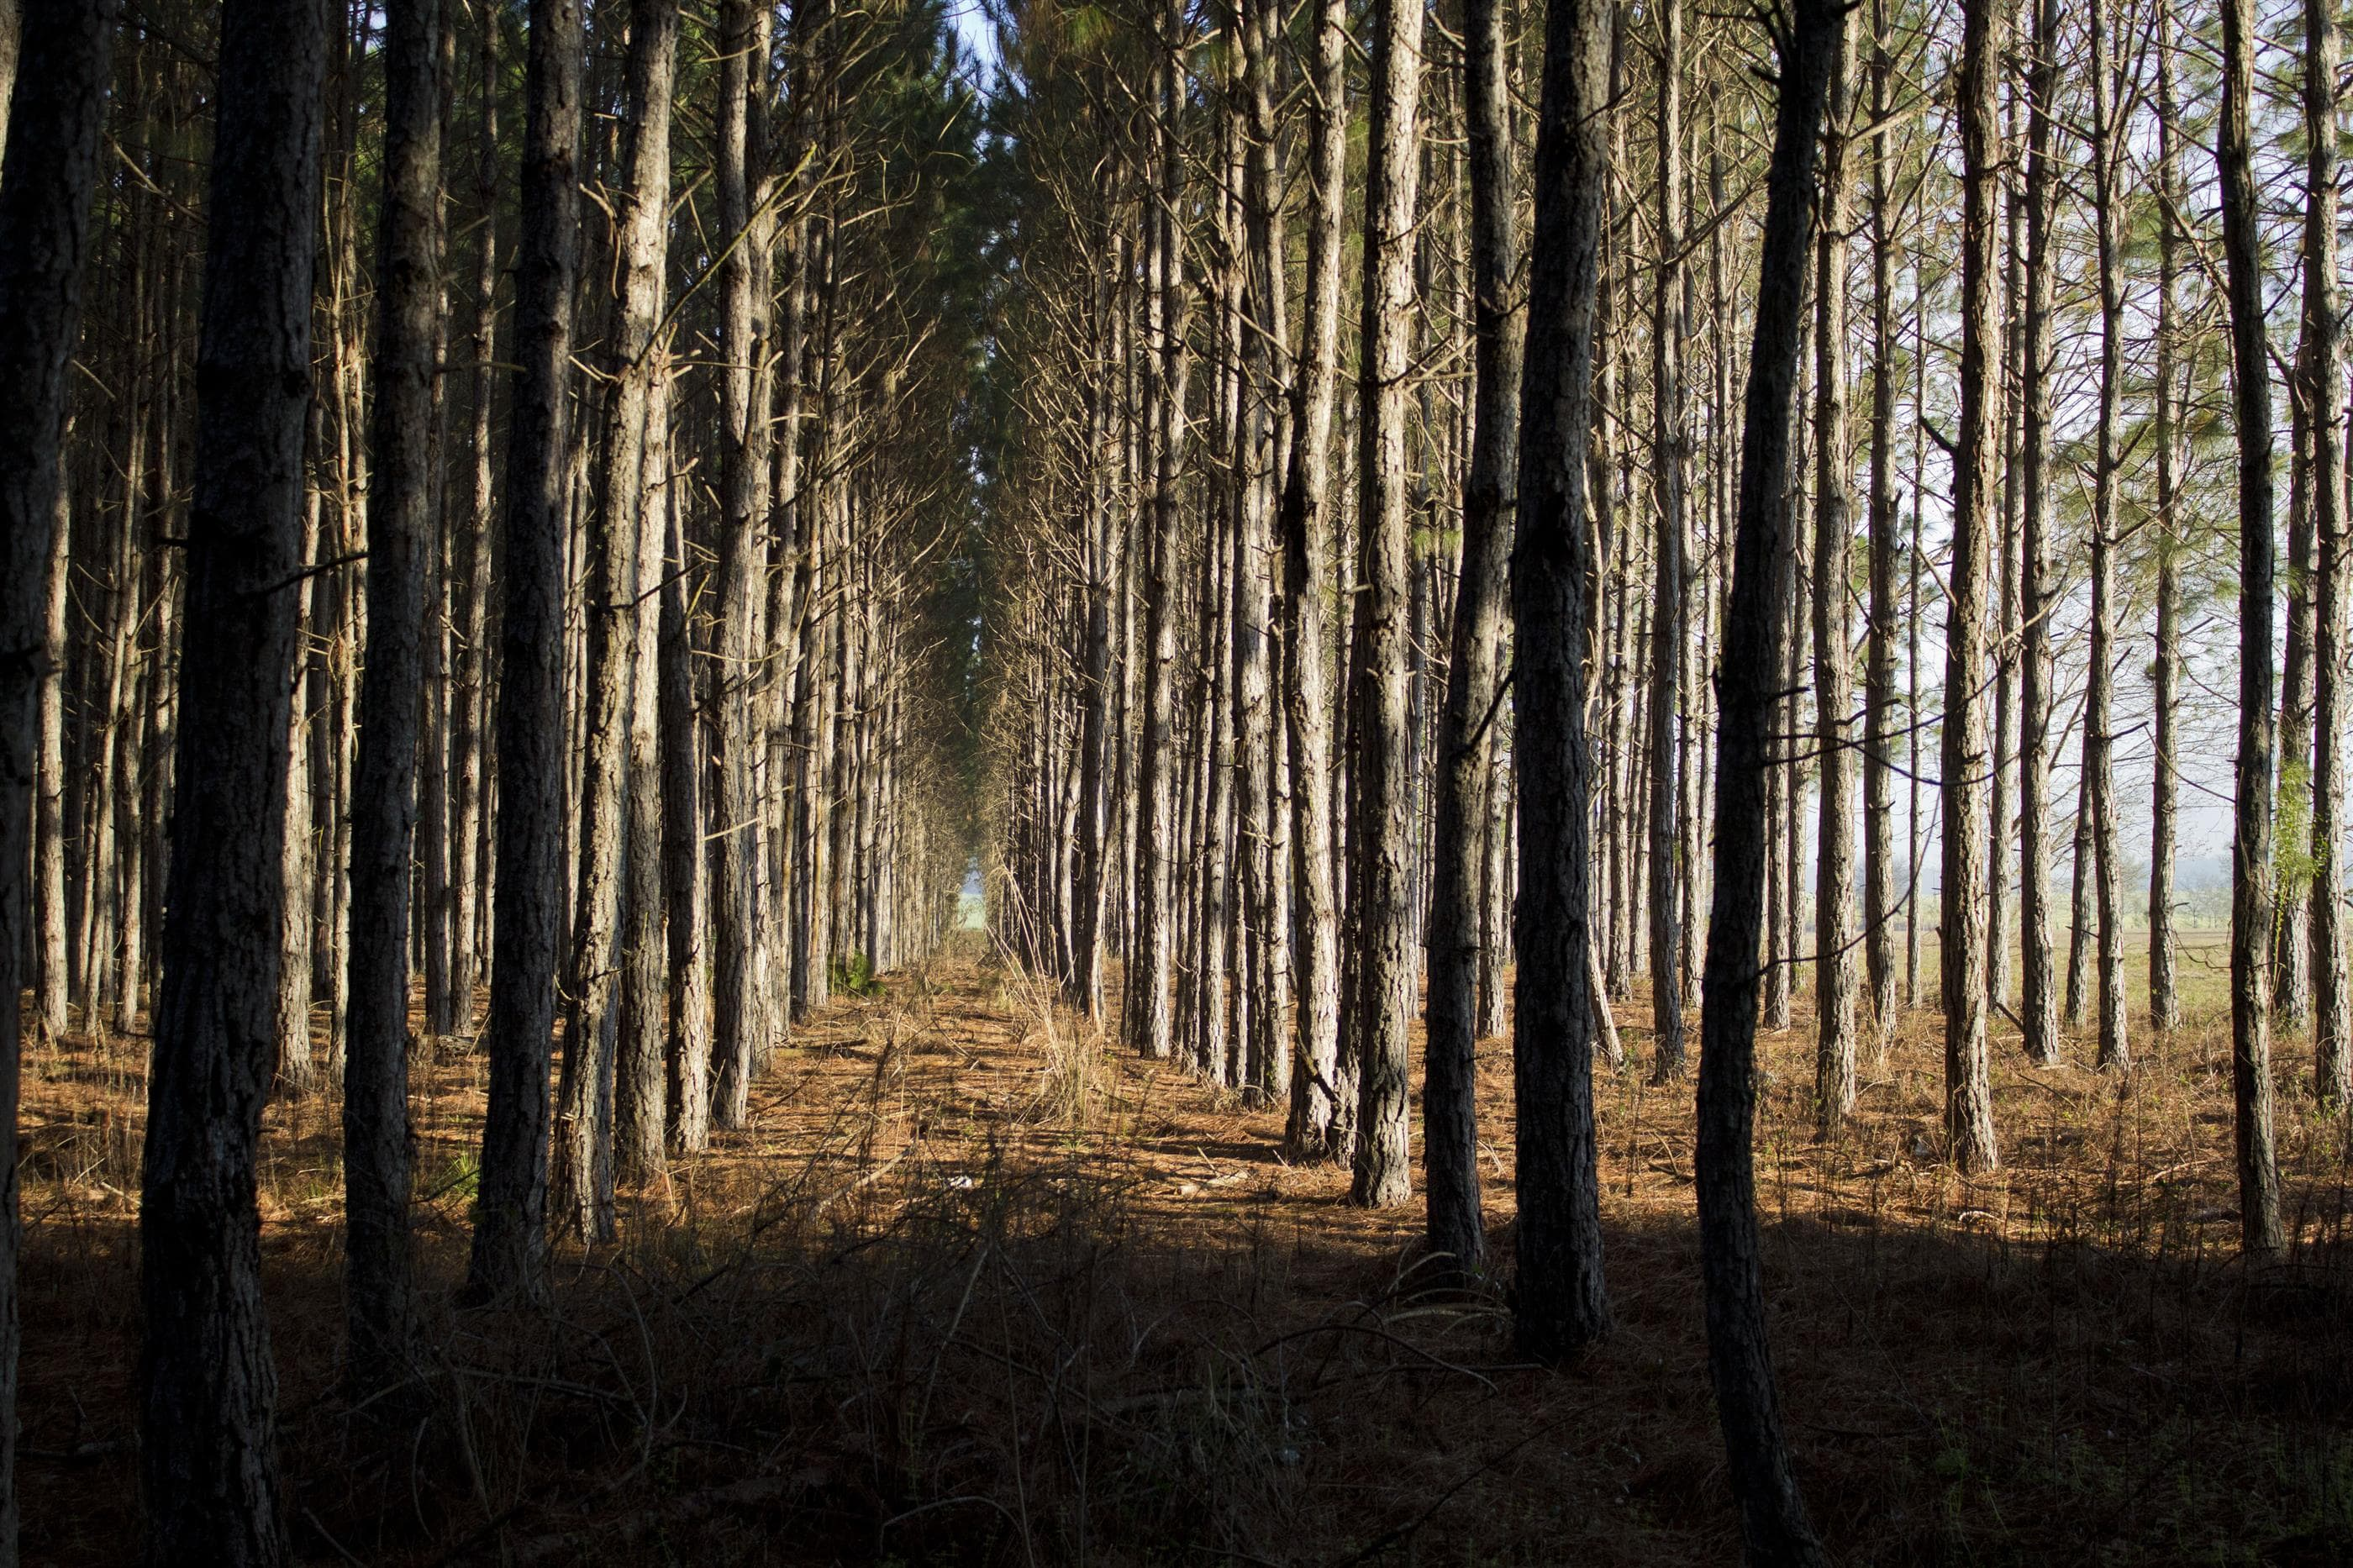 Timber property for sale in Suwannee County FL